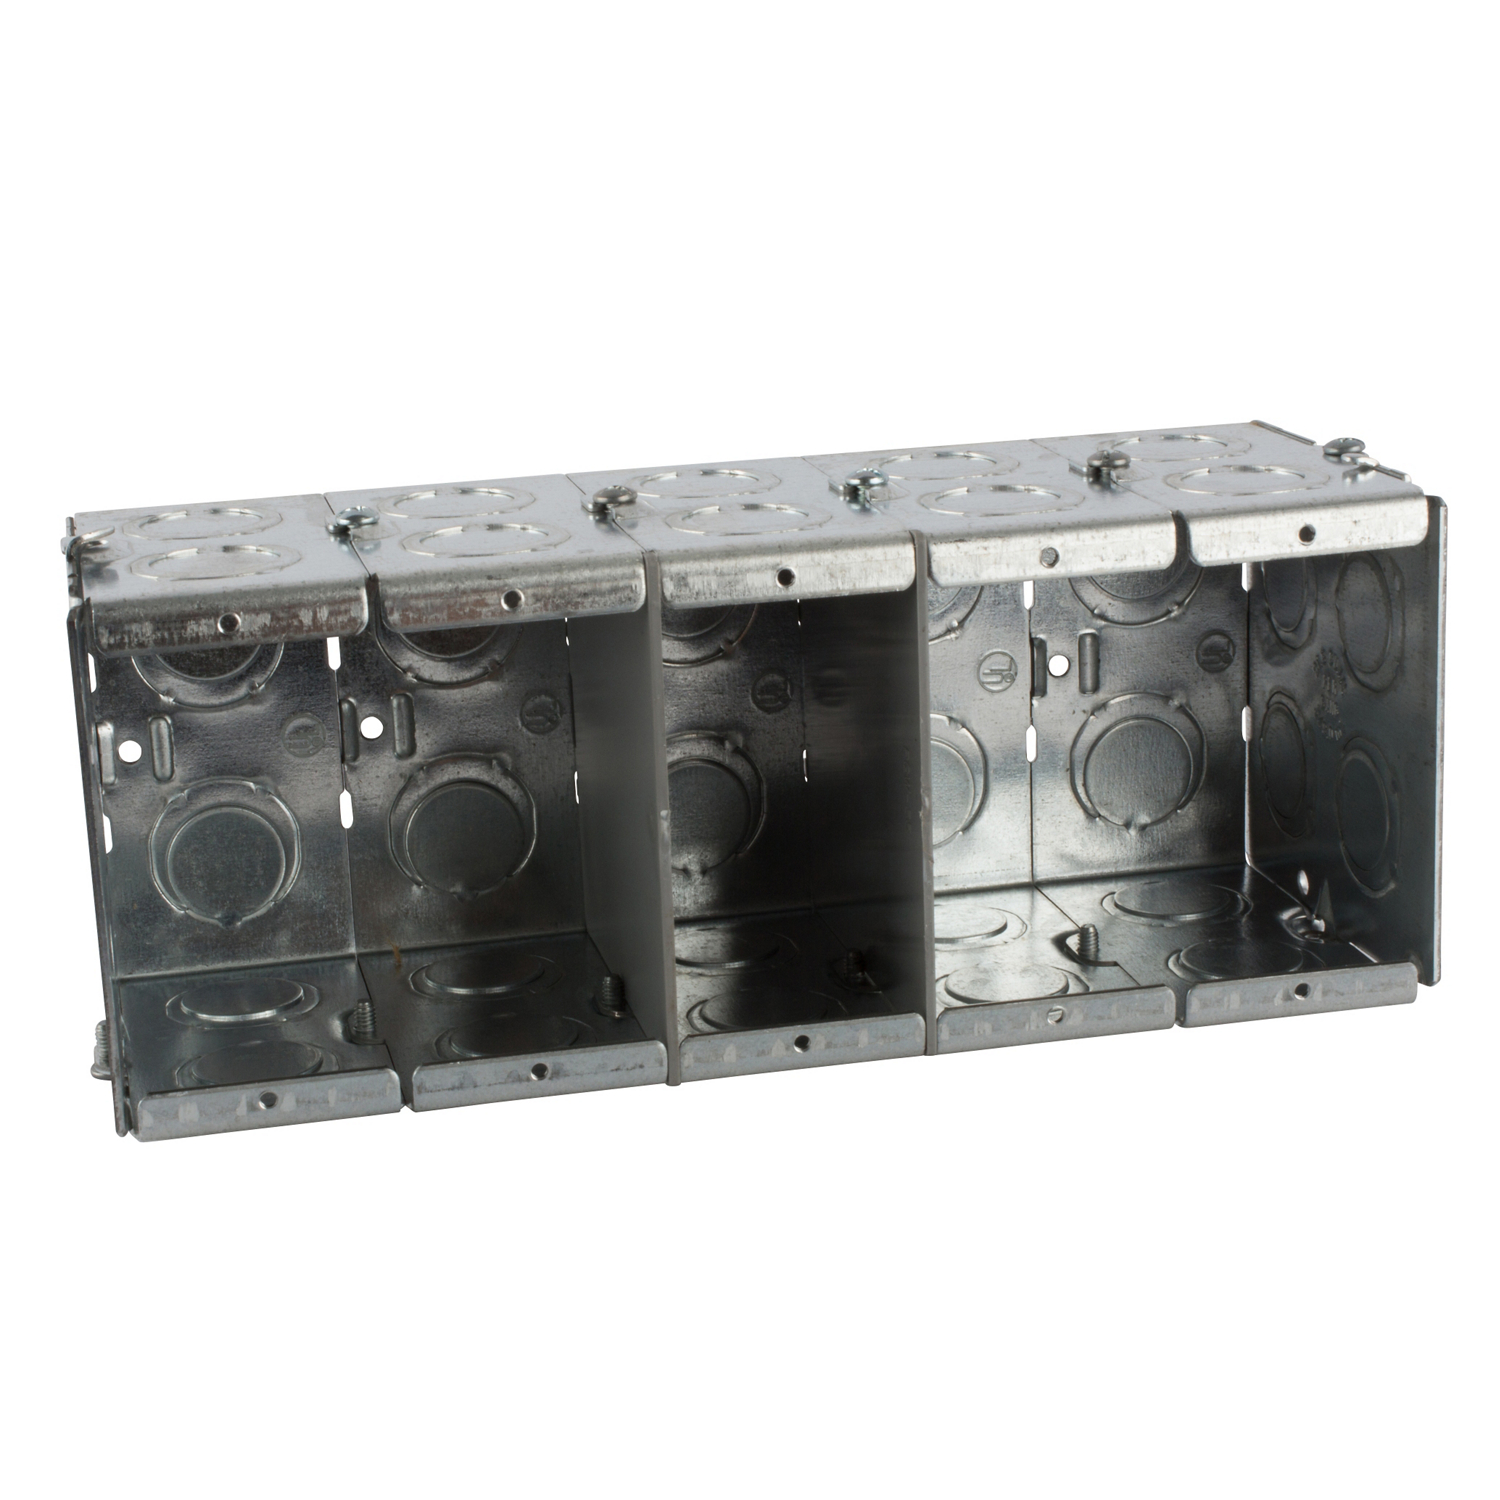 STCGW535G STL-CTY GW535-G 3-1/2D 5G MASO;Steel City® GW-535-G Gangable Masonry Box, Steel, 111.7 cu-in Capacity, 5 Gangs, 1 Outlets, 24 Knockouts